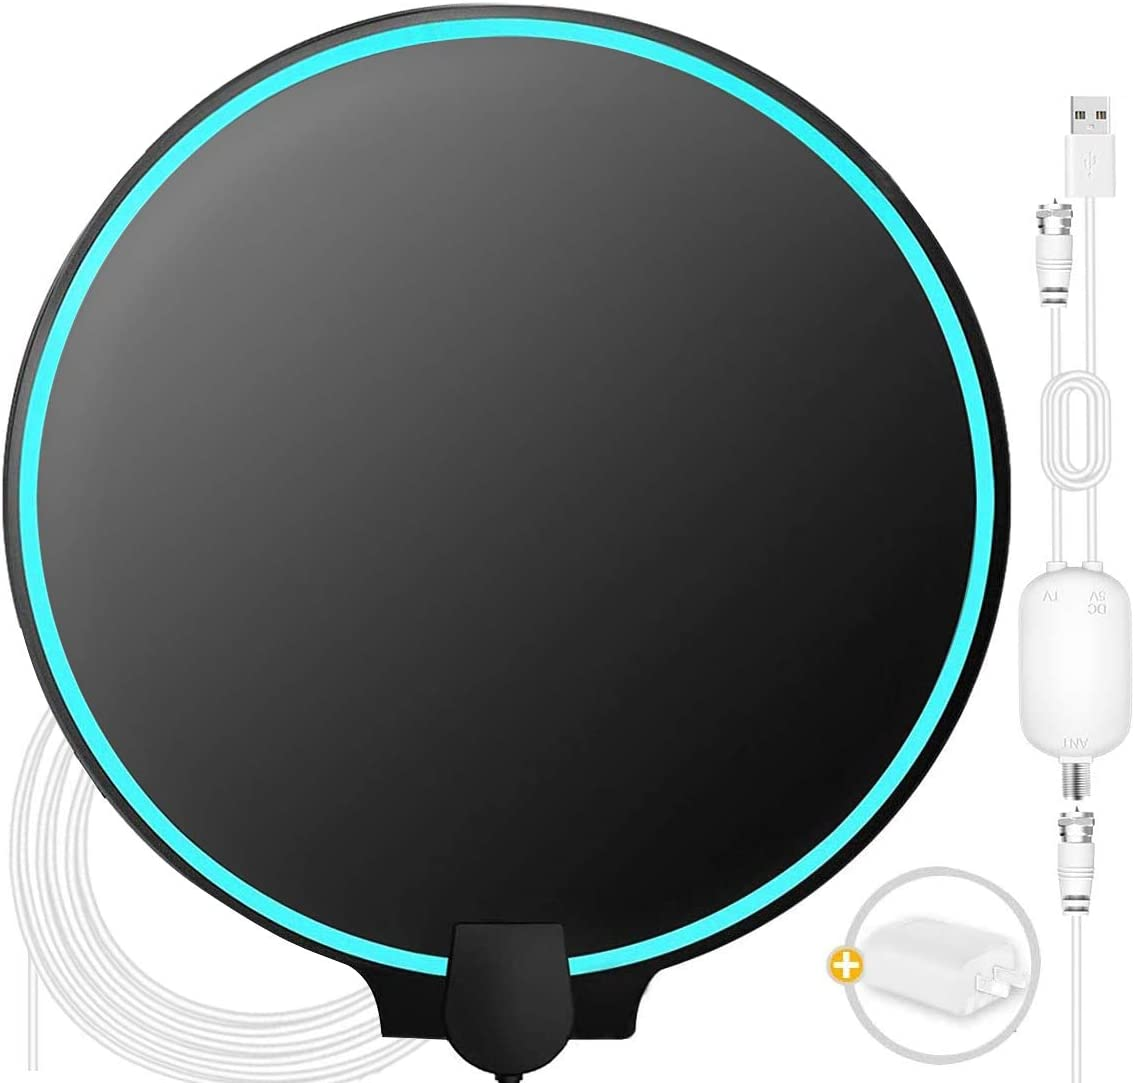 Amplified HD Digital TV Antenna Support All Local Channels Digital Antenna for Smart TV with Magnetic Base 【2020 Upgraded】Wonido TV Antenna Indoor HD Antenna for TV Indoor with 150 Miles Reception